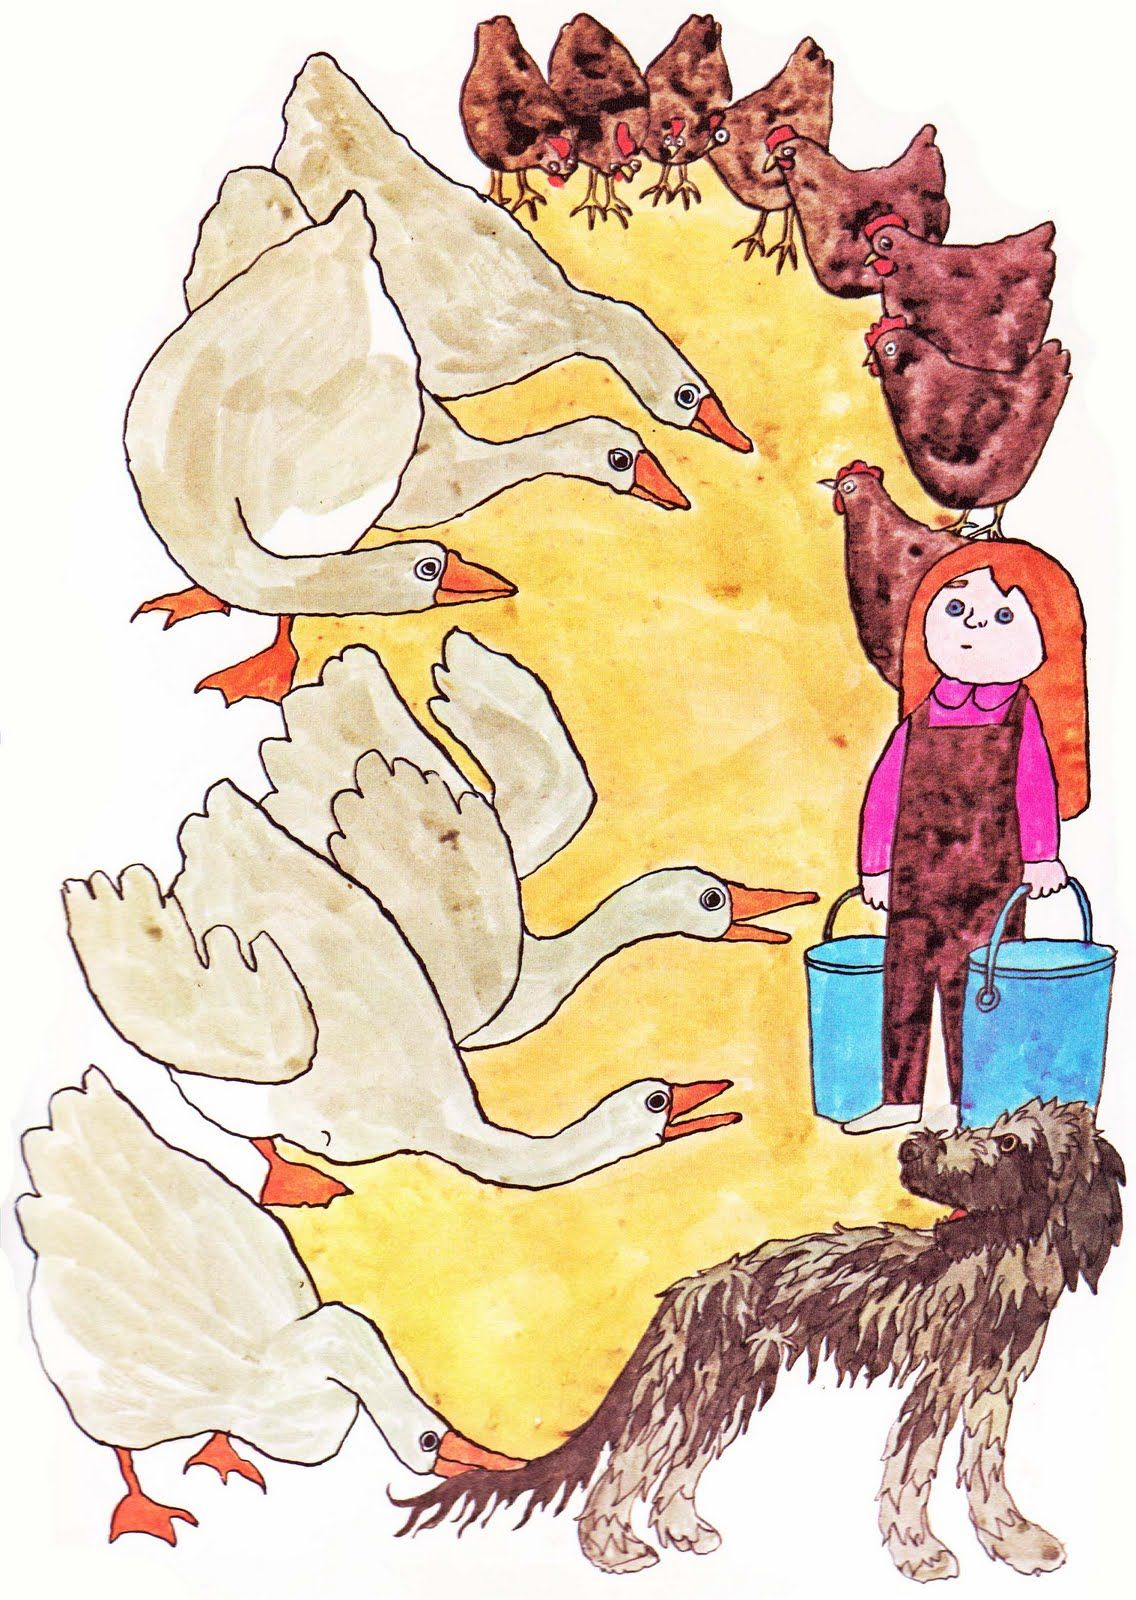 Vintage Kids' Books My Kid Loves: Our Animal Friends at Maple Hill Farm